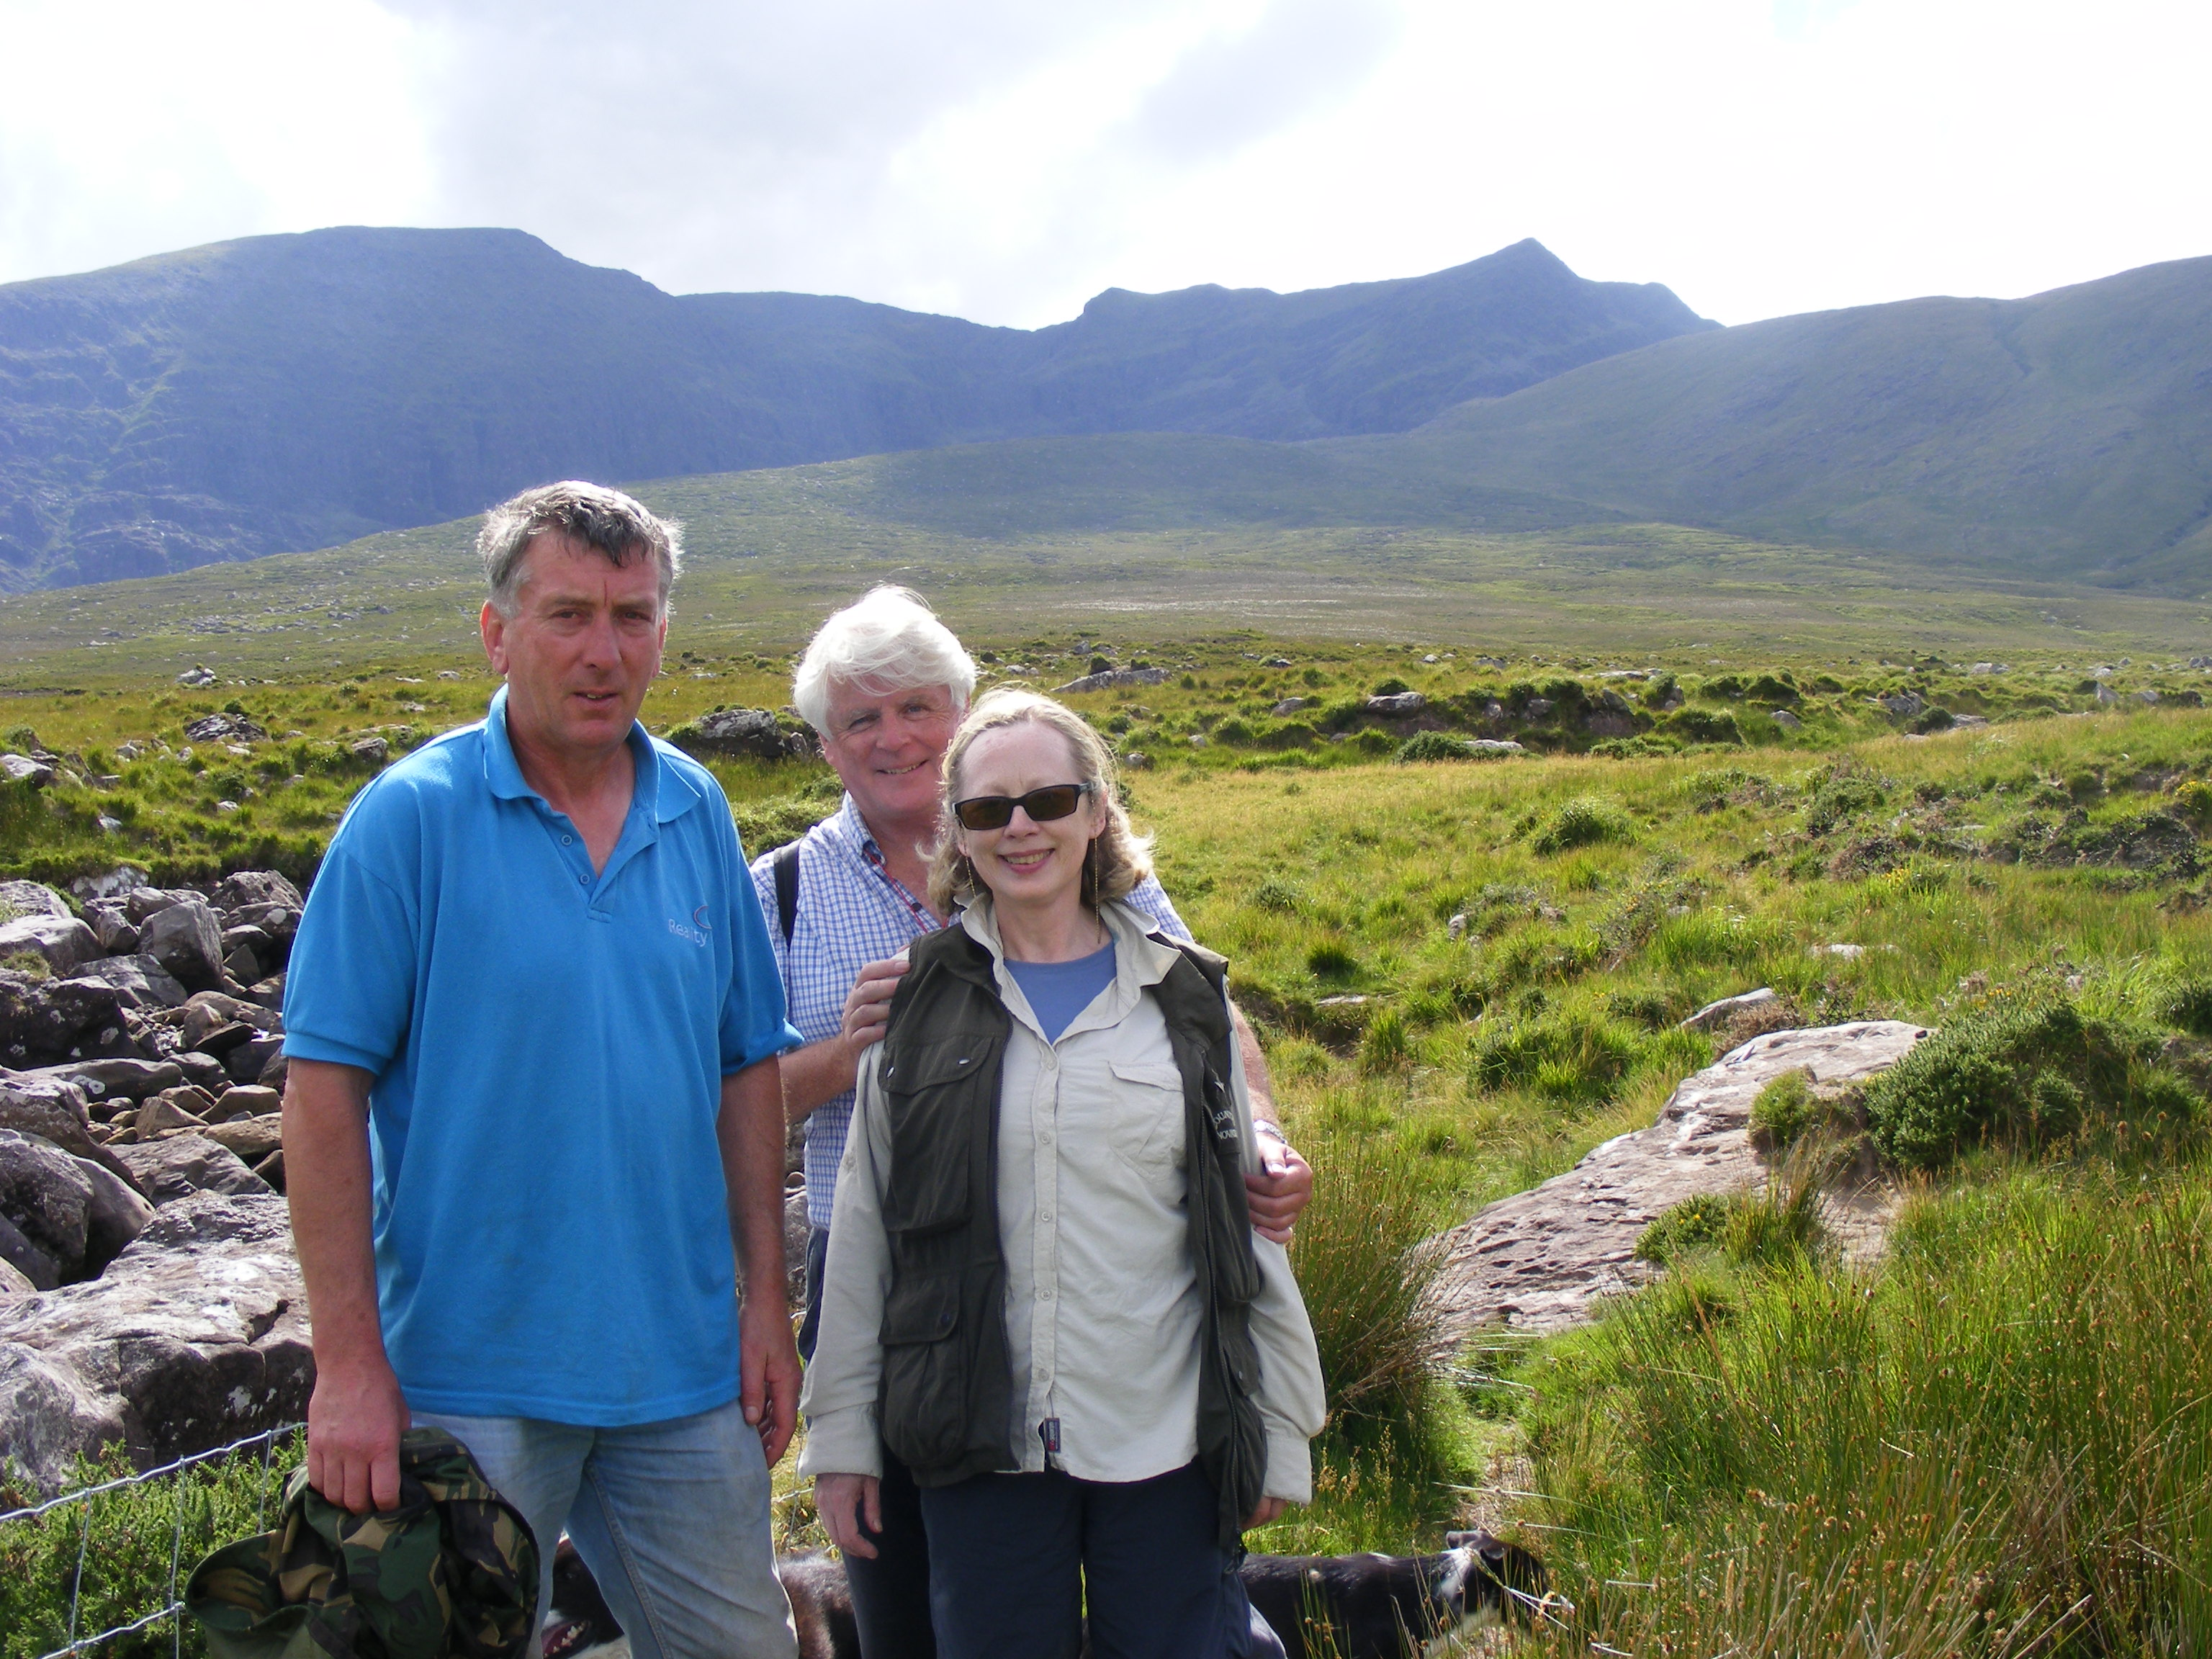 Katie and Graham Frazer along with local man               Seamus Fitzgerald who guided us up the mountain.